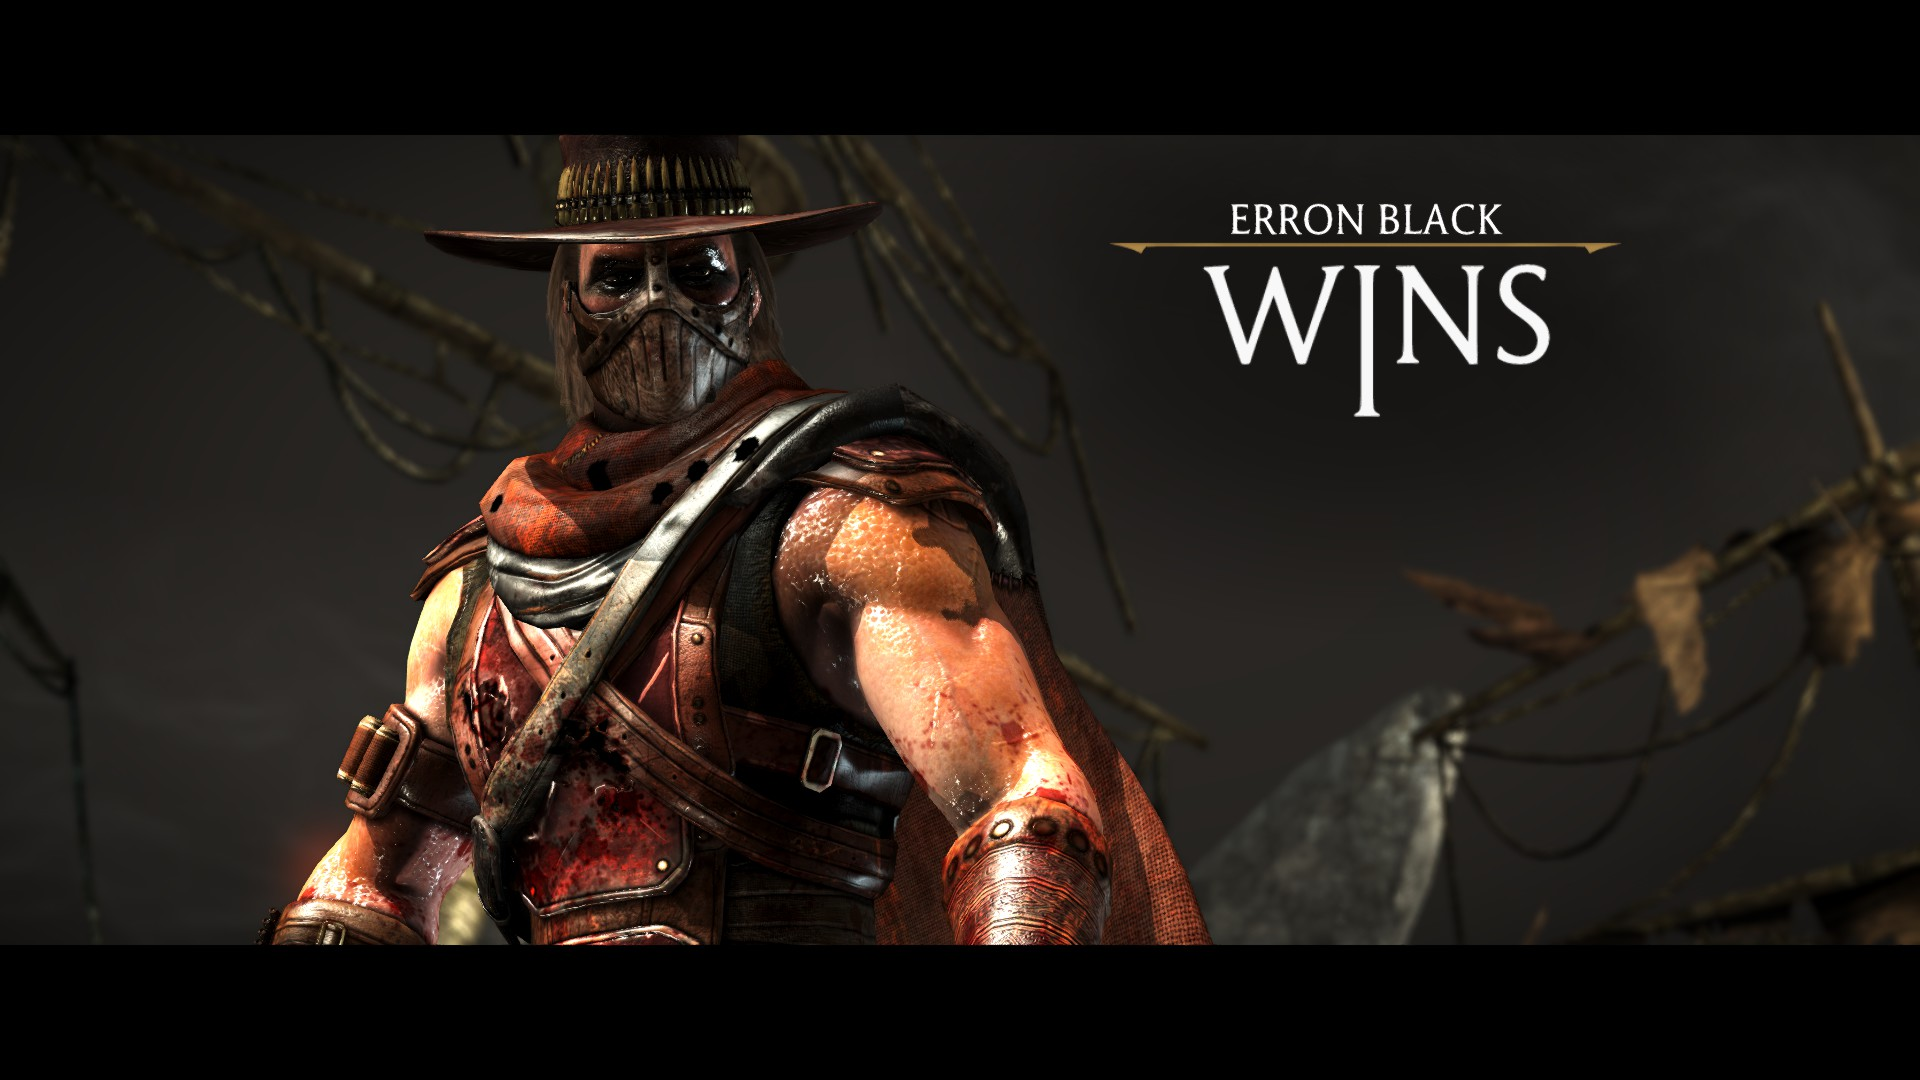 Erron Black Hd Wallpaper